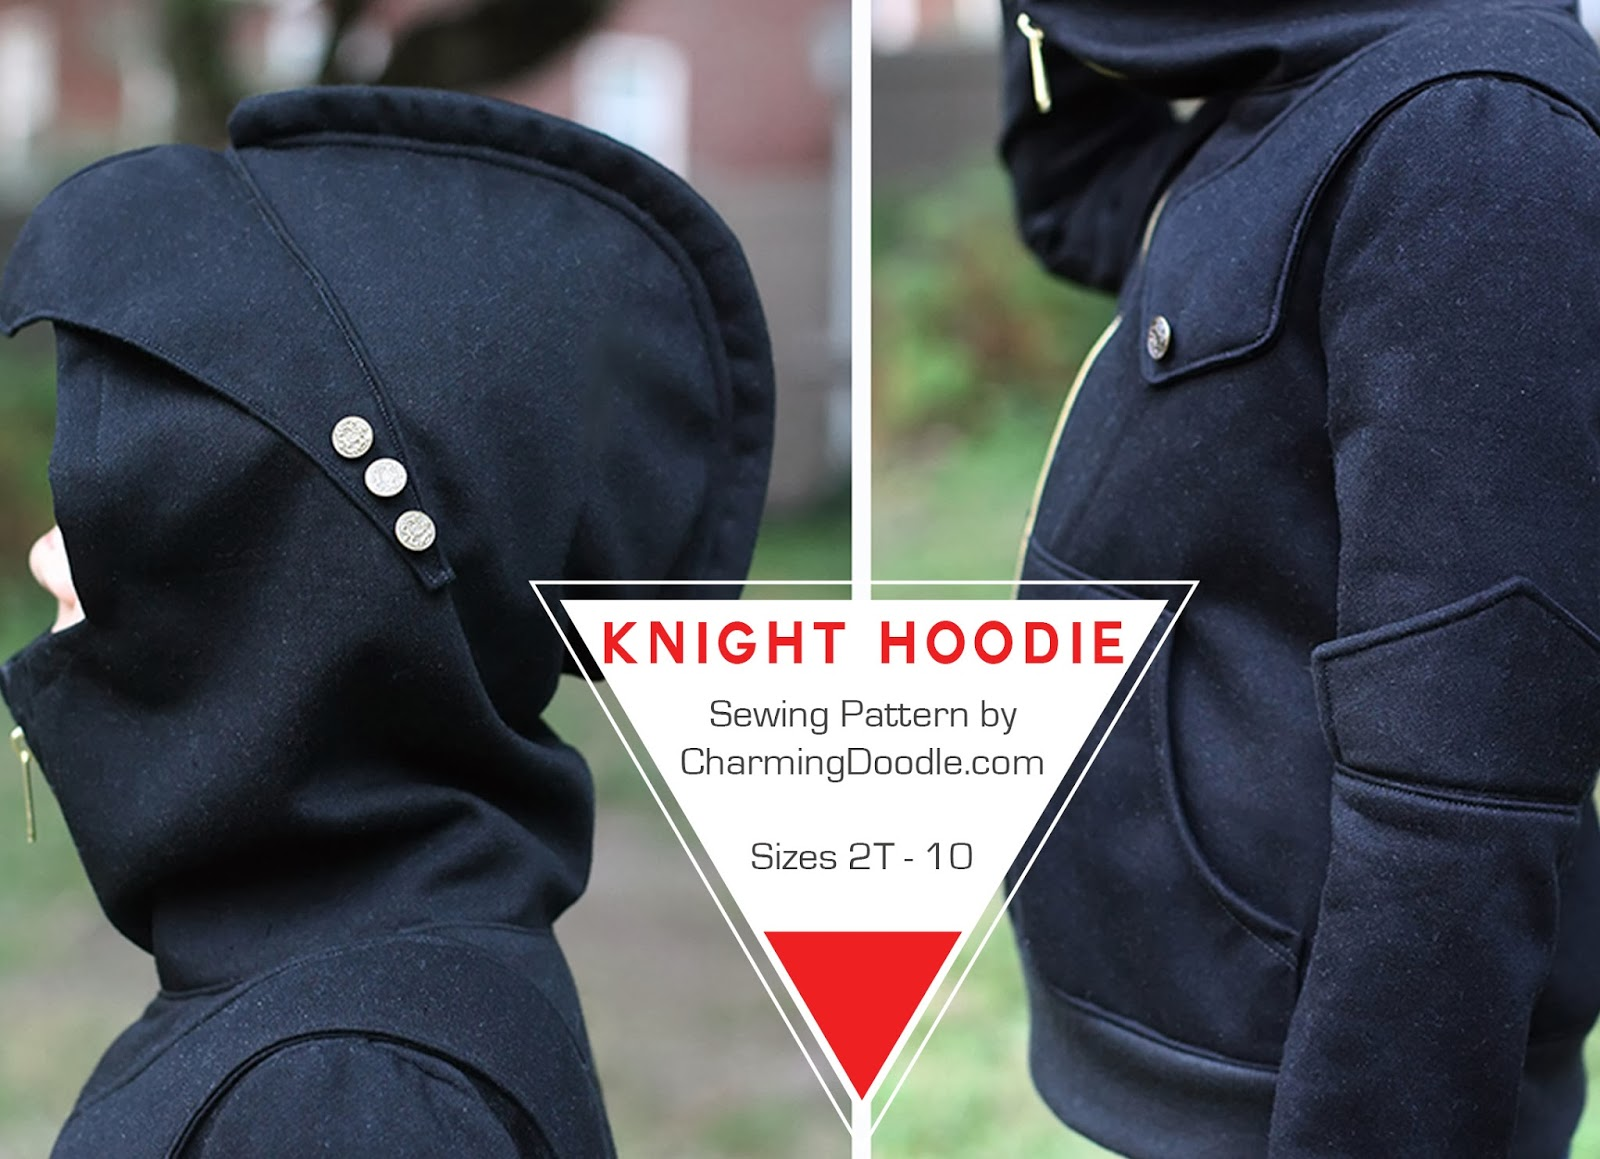 Charming Doodle Sew It Build It Introducing The Knight Hoodie